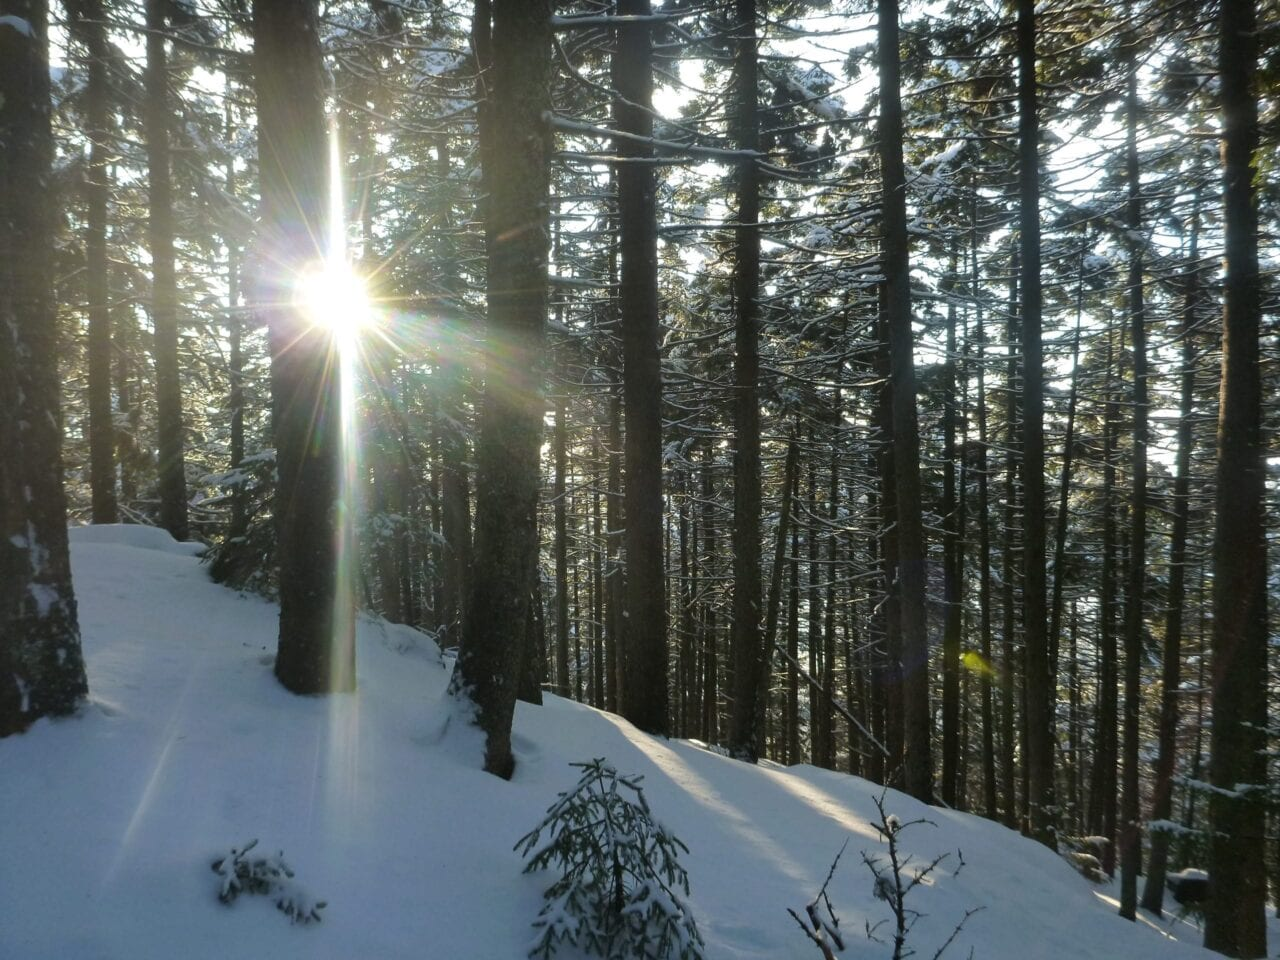 Sun shines through trees in a snowy forest.